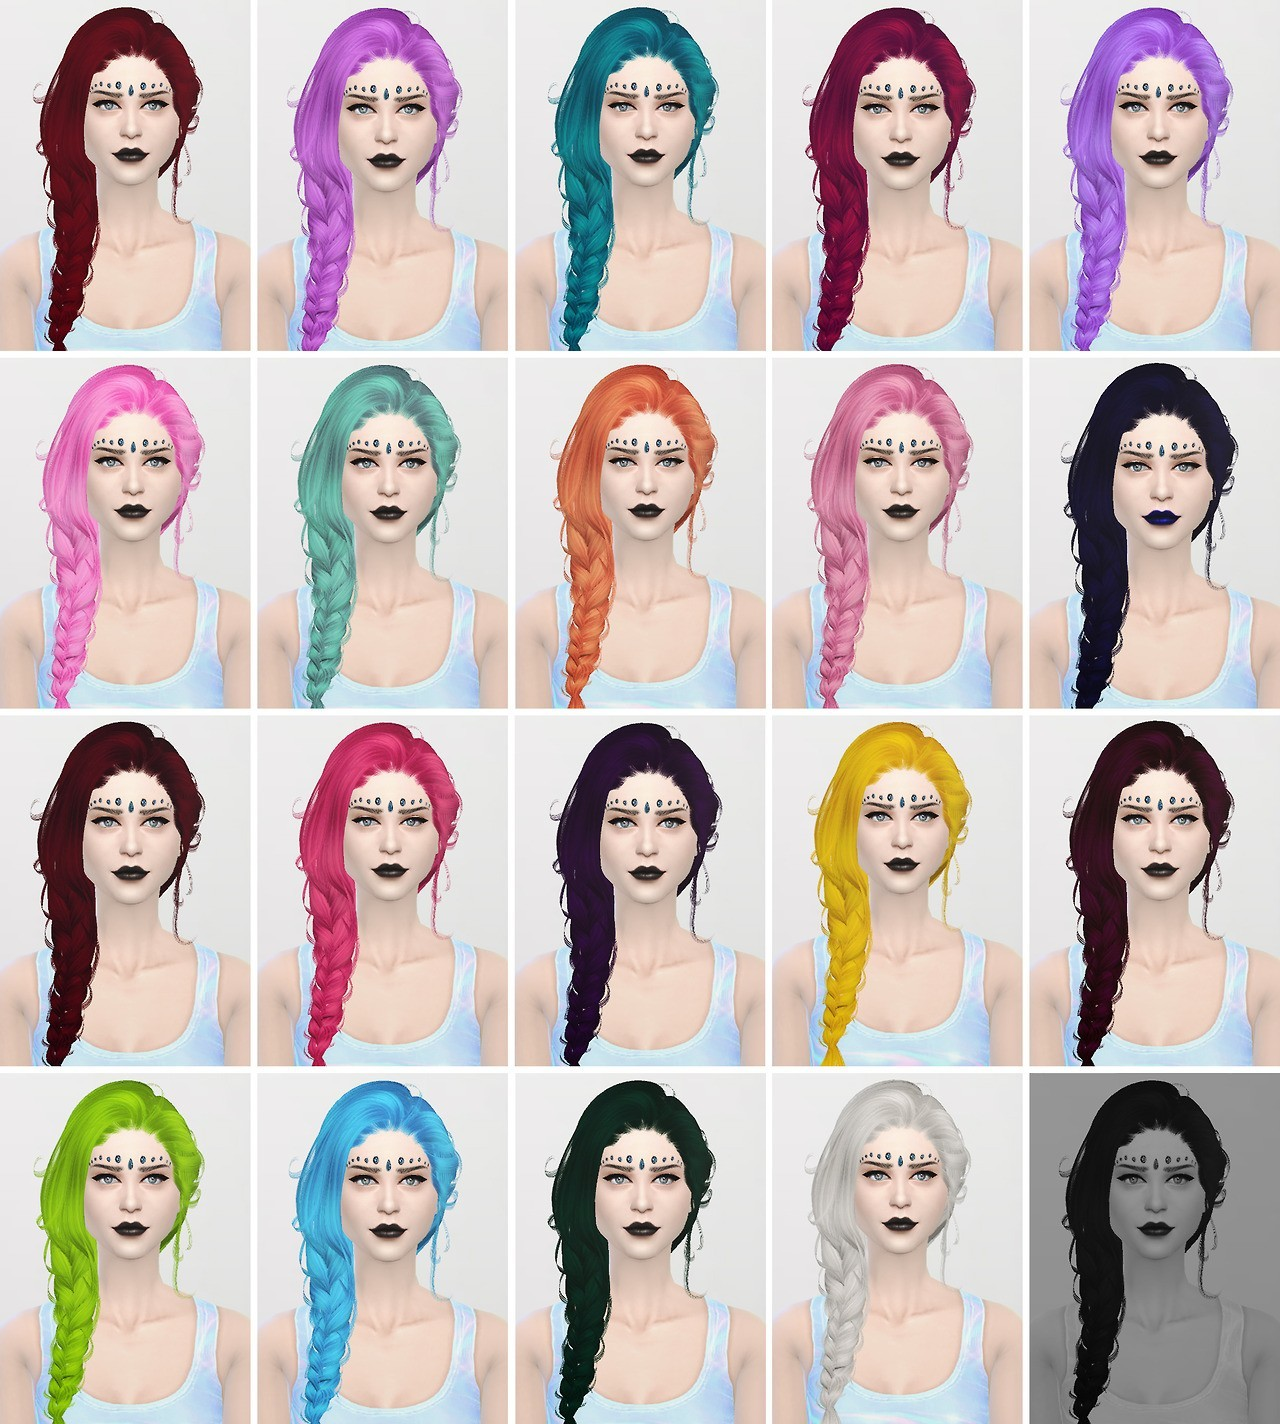 Sims 4 Hairs ~ xxxxxx: Newsea`s Erena hairstyle converted